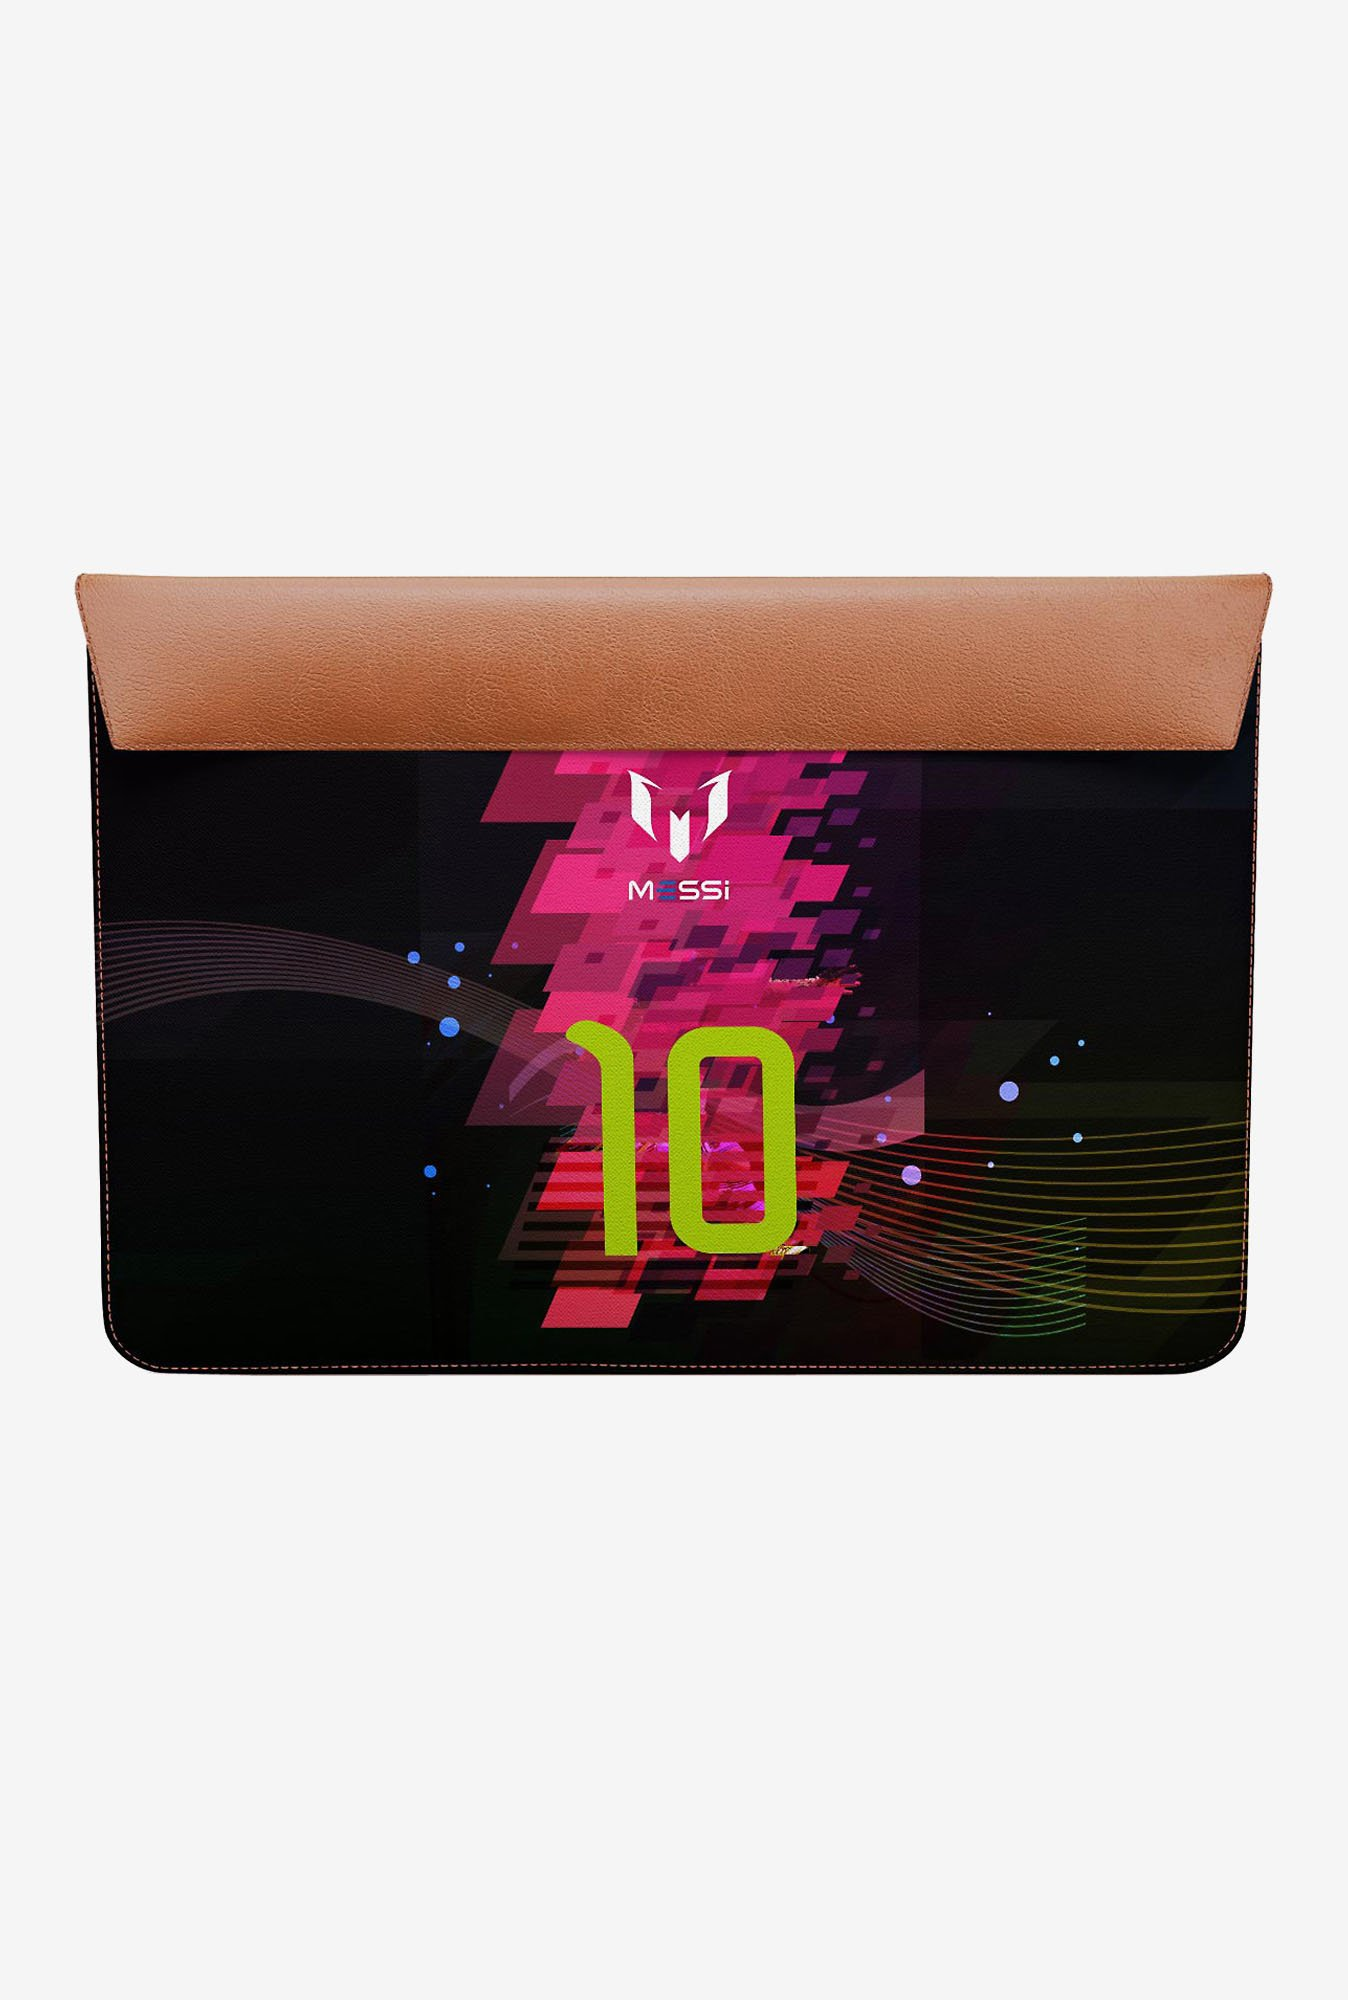 DailyObjects Messi Chaos MacBook Pro 15 Envelope Sleeve